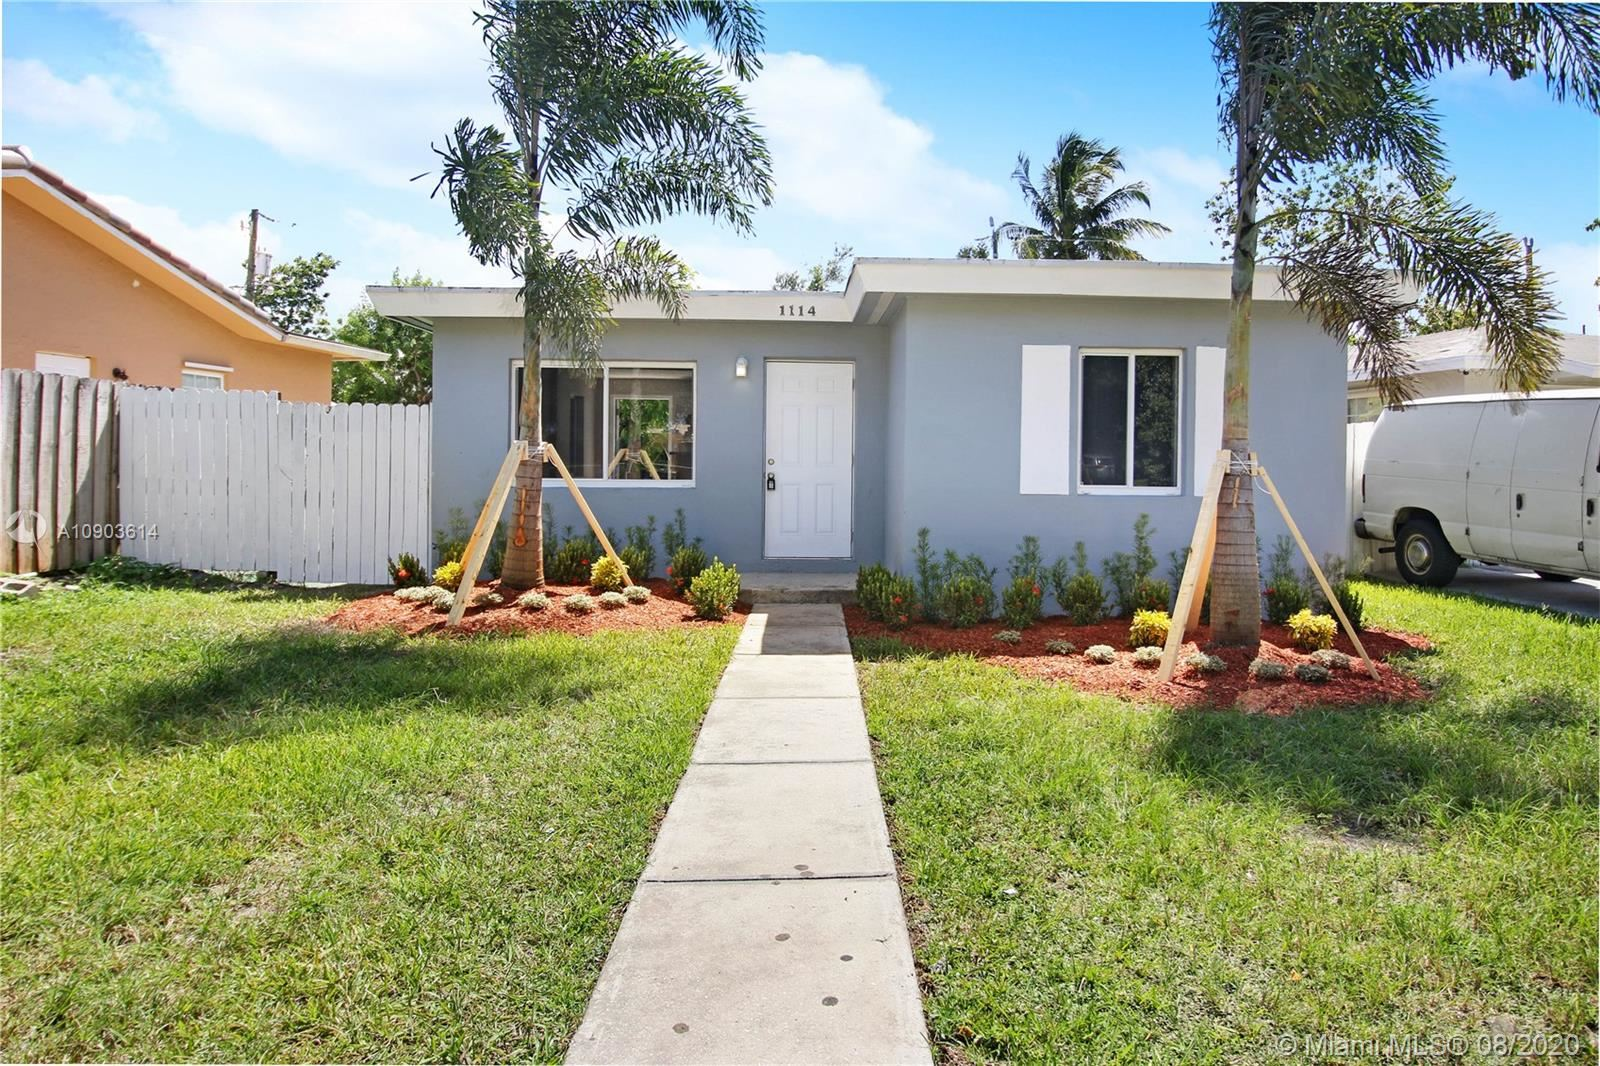 1114 N 61st Ave, Hollywood, FL 33024 - #: A10903614